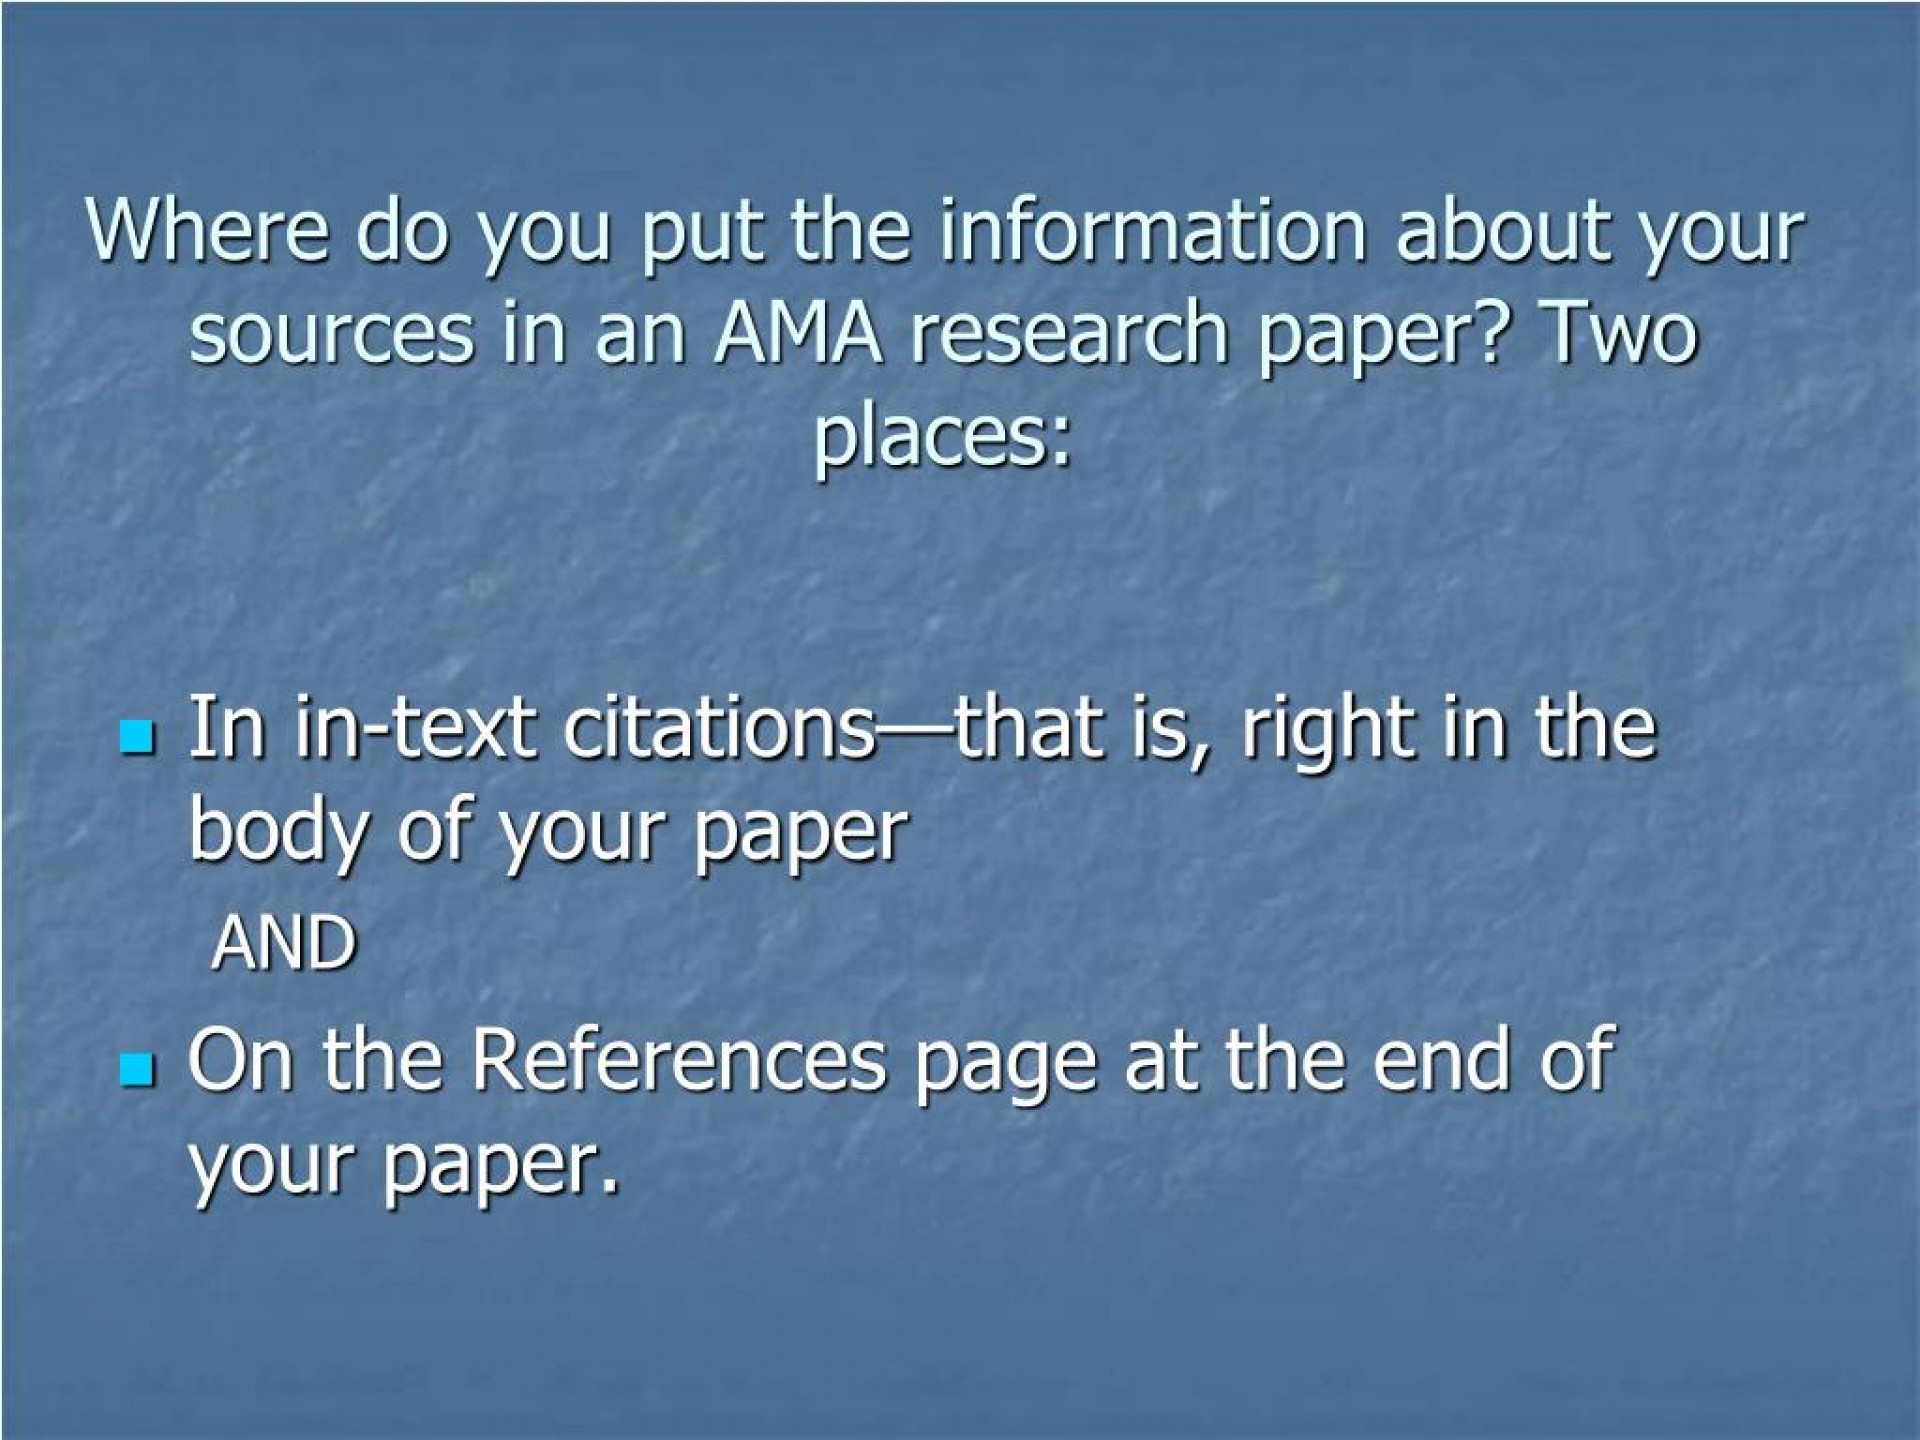 006 Can You Write Research Paper In Day Where Do Put The Information About Your Sources An Ama Two Places Archaicawful A 1920